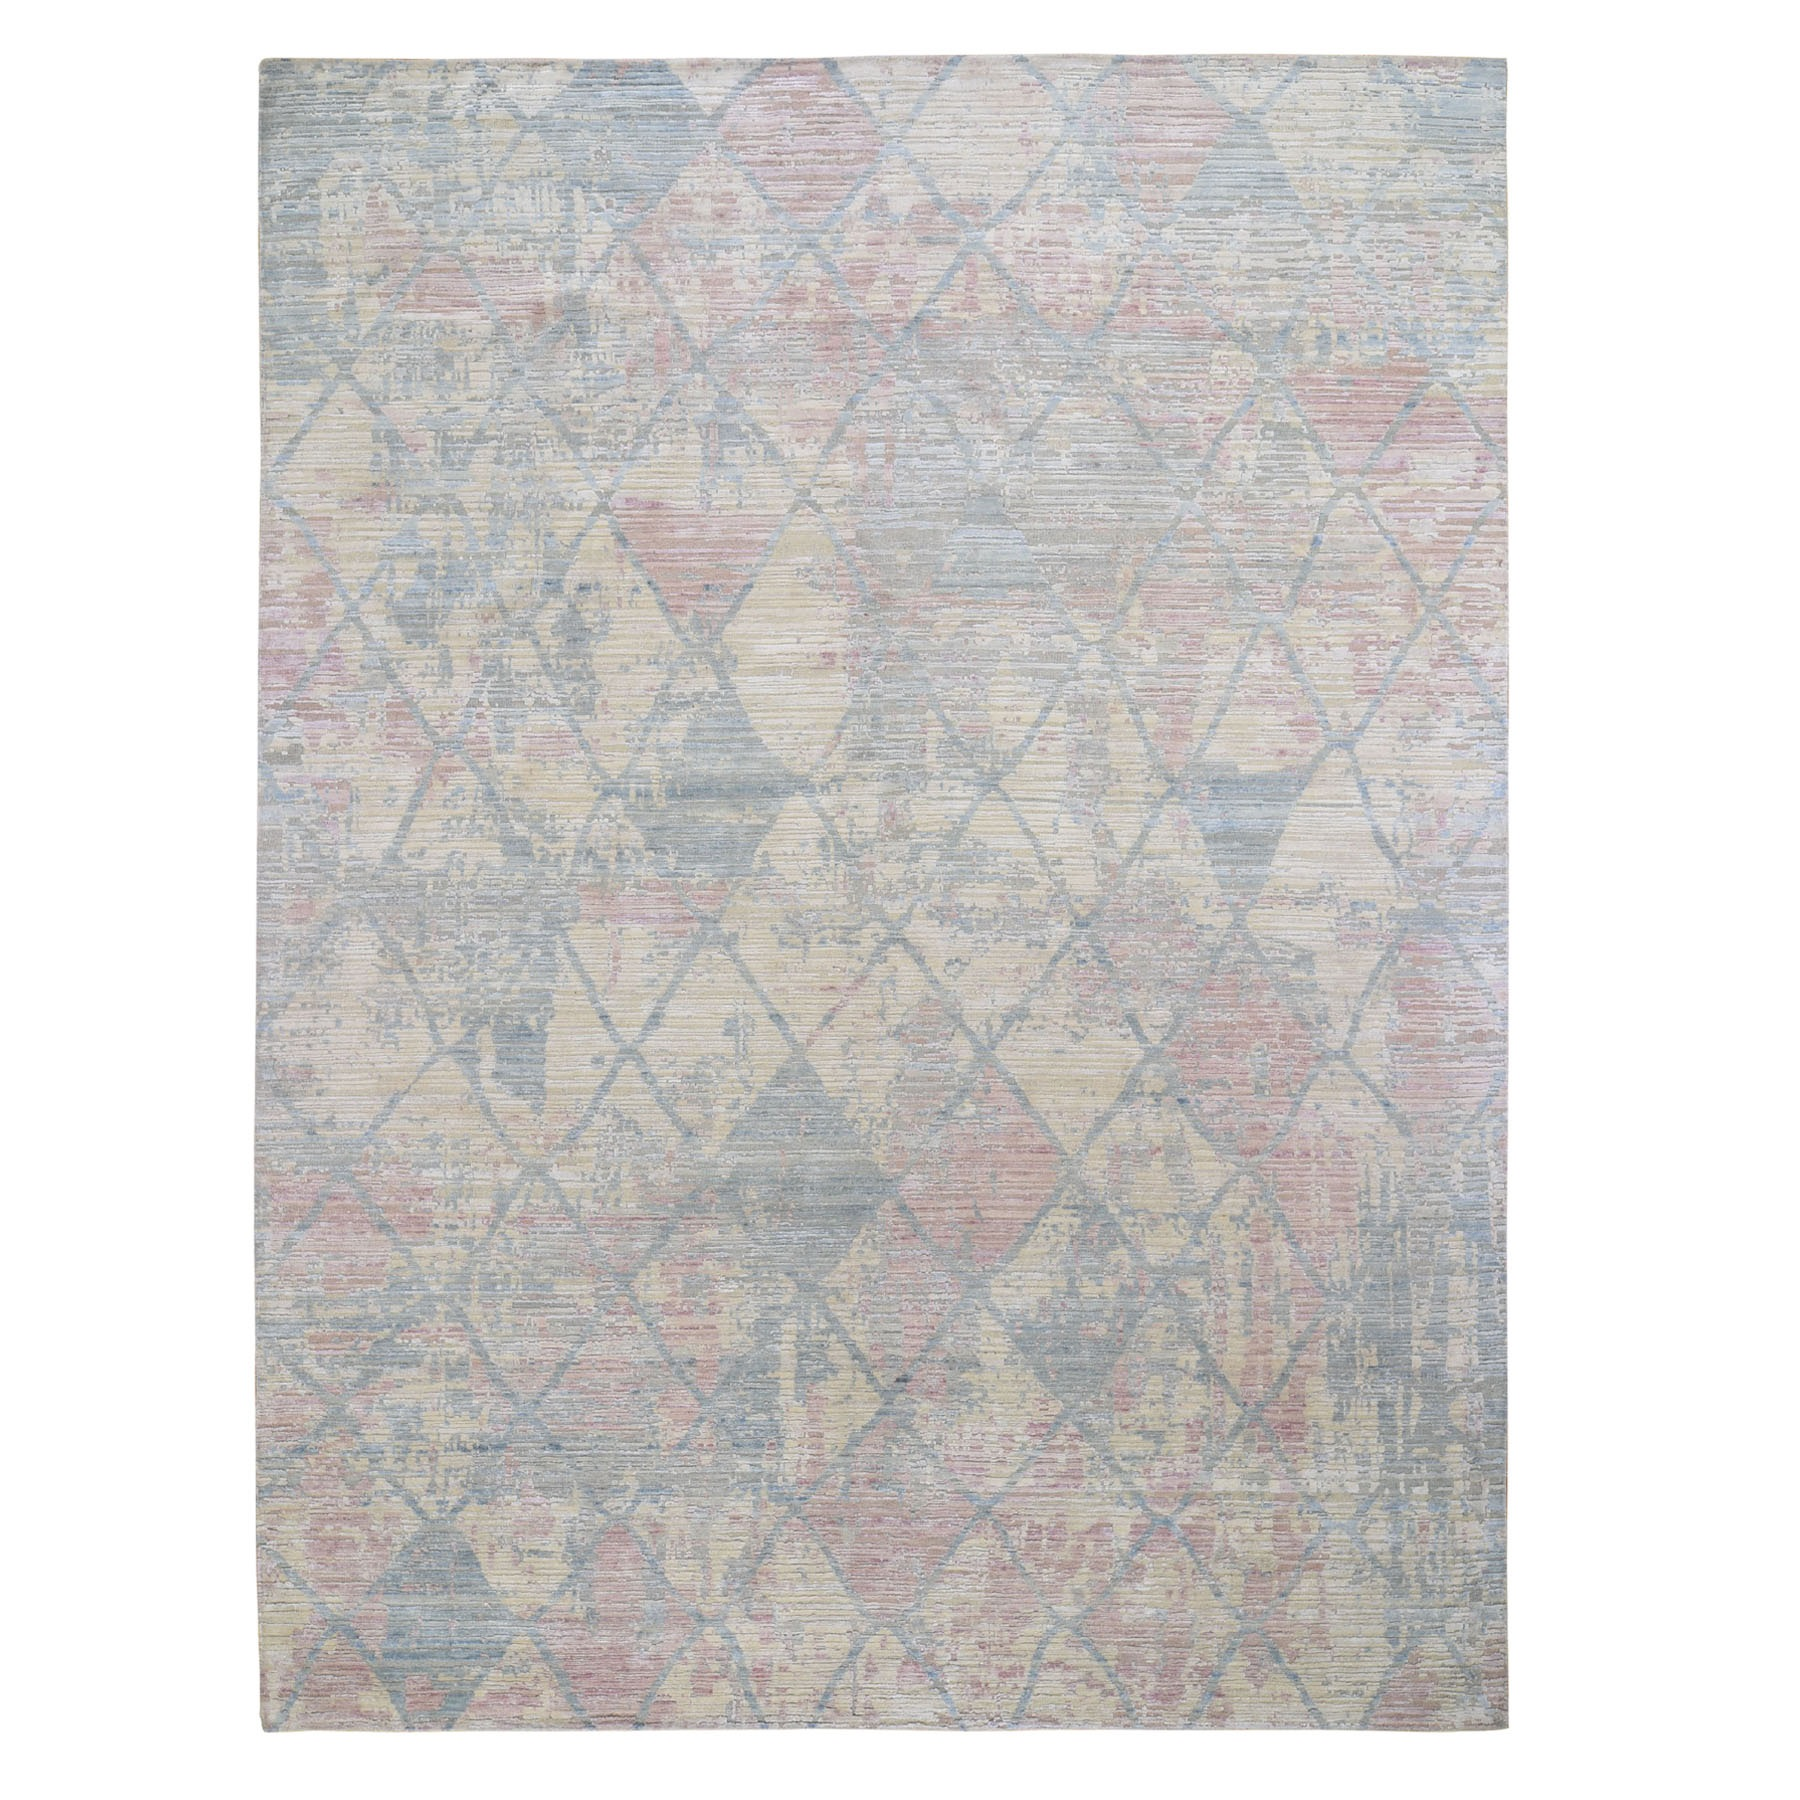 "9'x11'10"" Pastel Colors Textured Wool And Pure Silk Genuine Hand Knotted Oriental Rug"